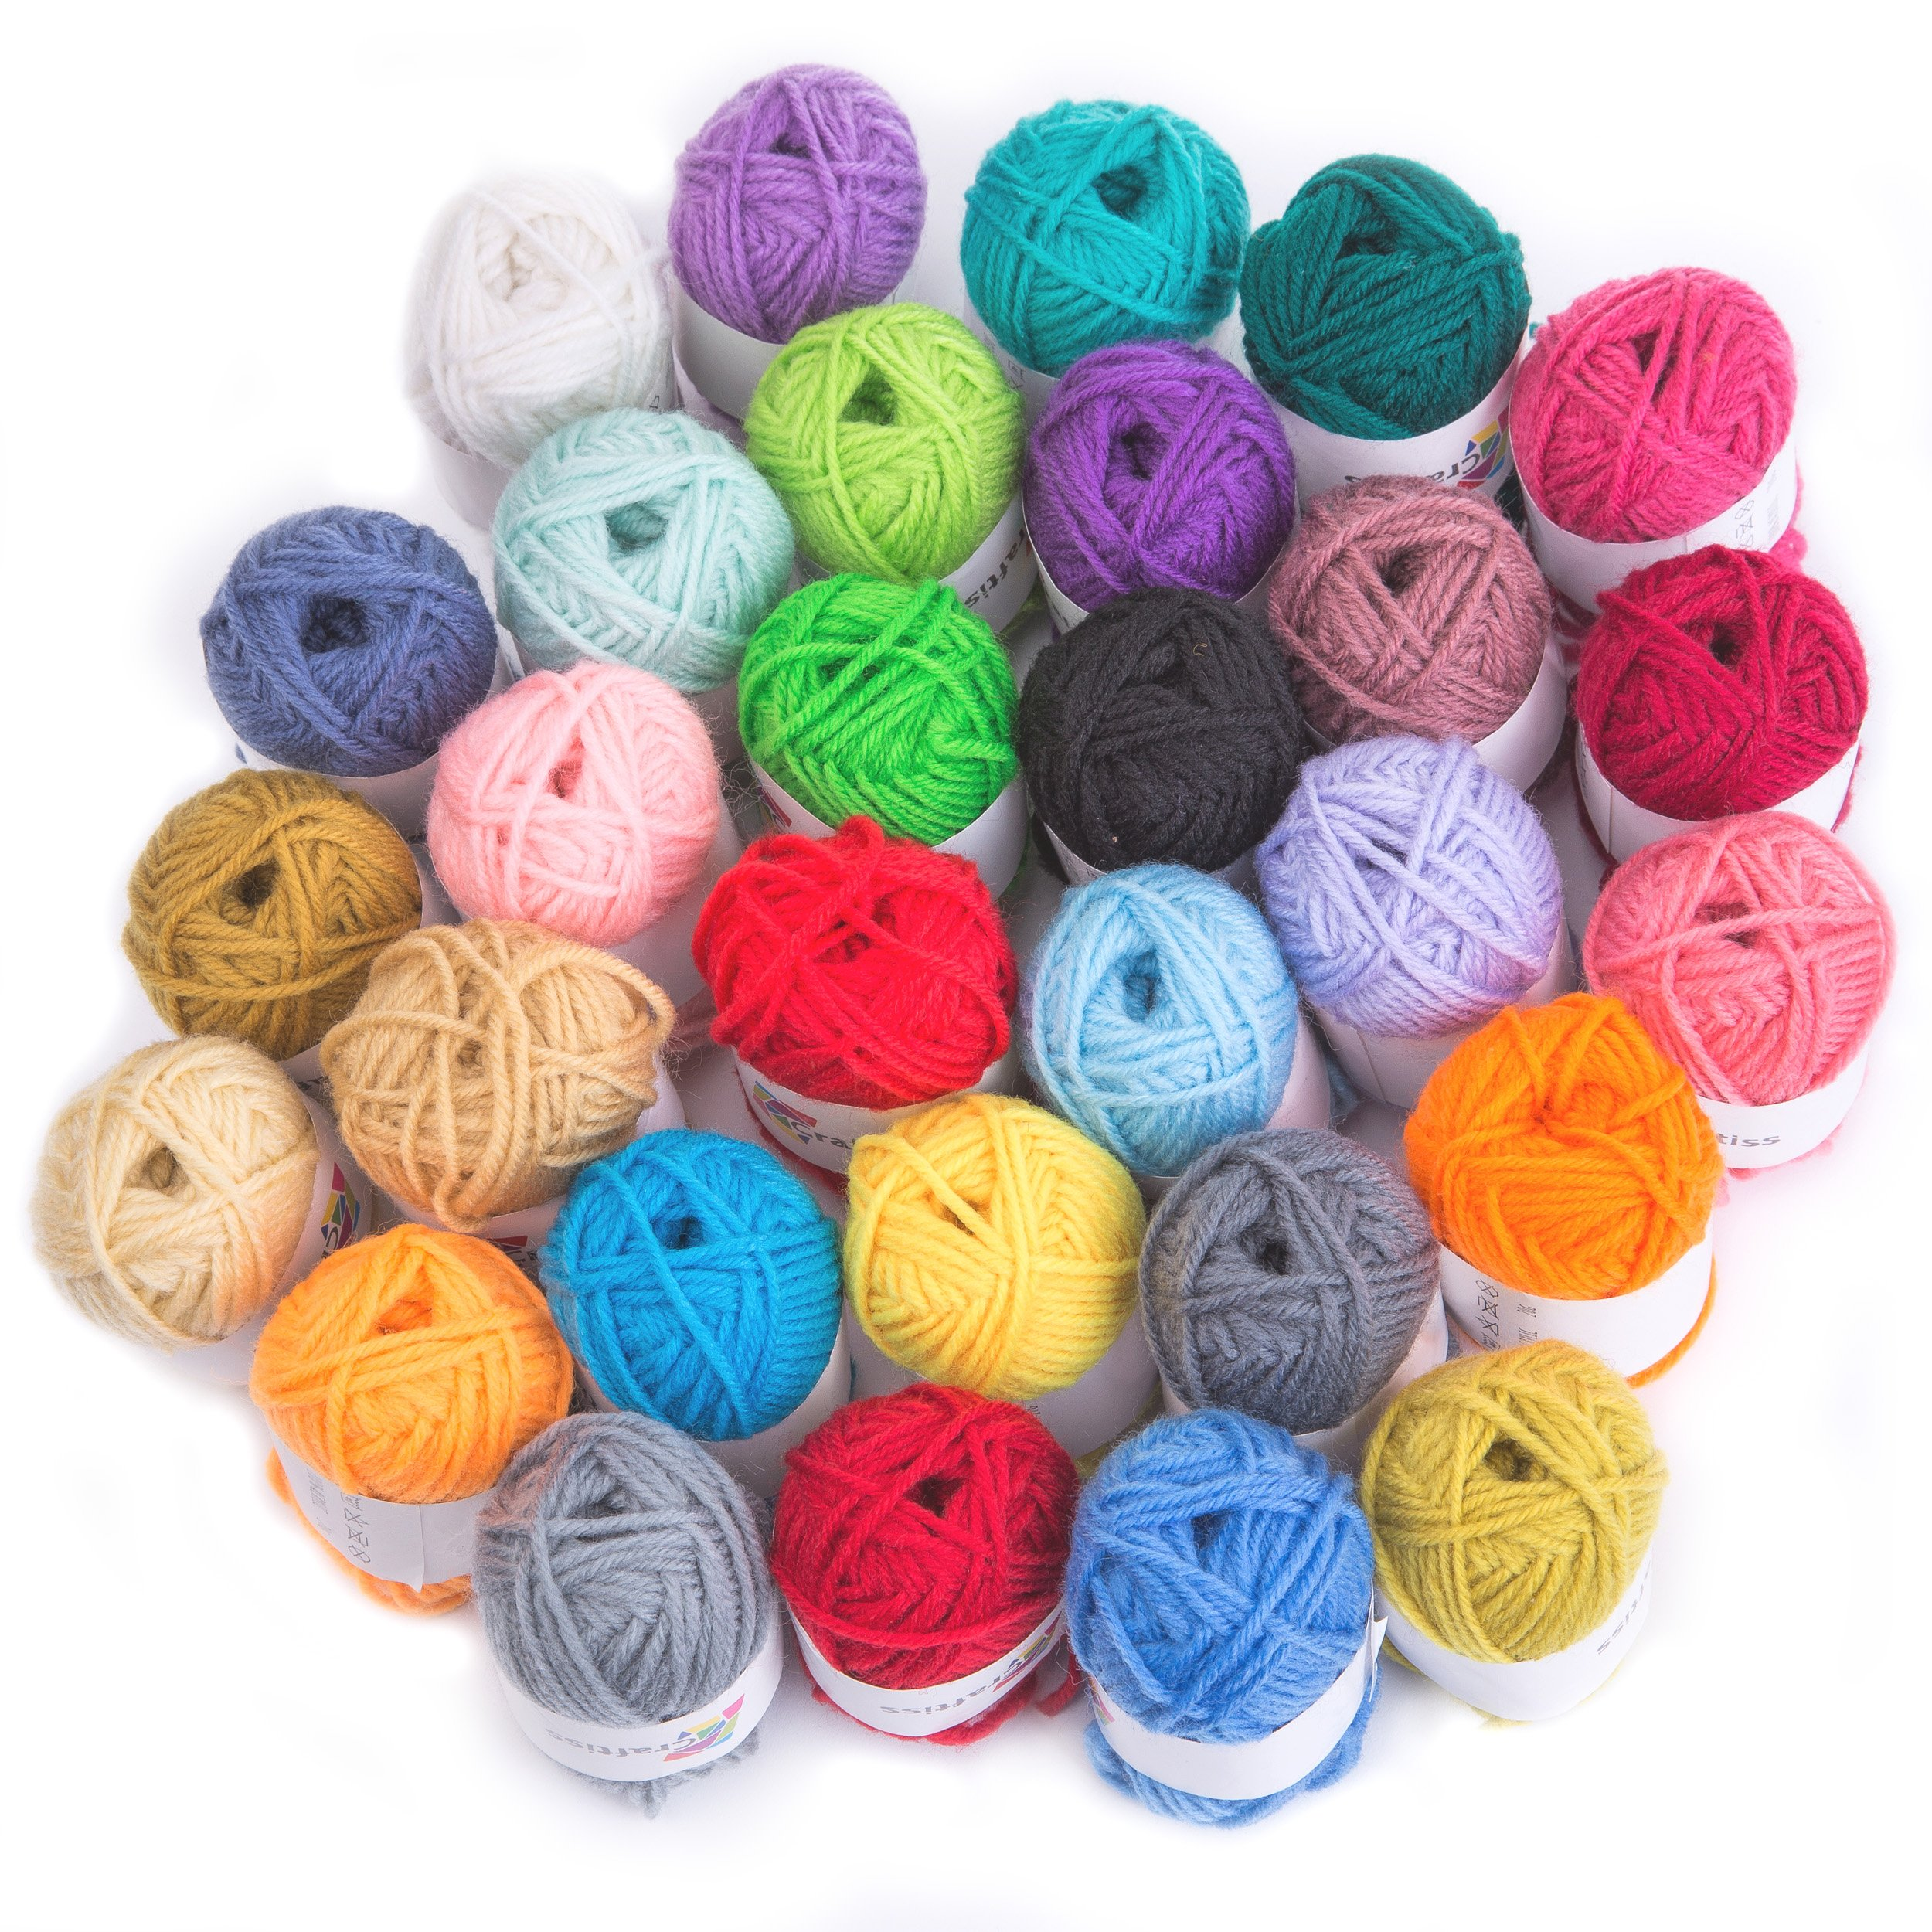 Craftiss 30 Unique Colors Acrylic Yarn Skeins ~ Bulk Yarn Kit ~ 1300 yards ~ Perfect for Any Knitting and Crochet Mini Project by Craftiss (Image #5)